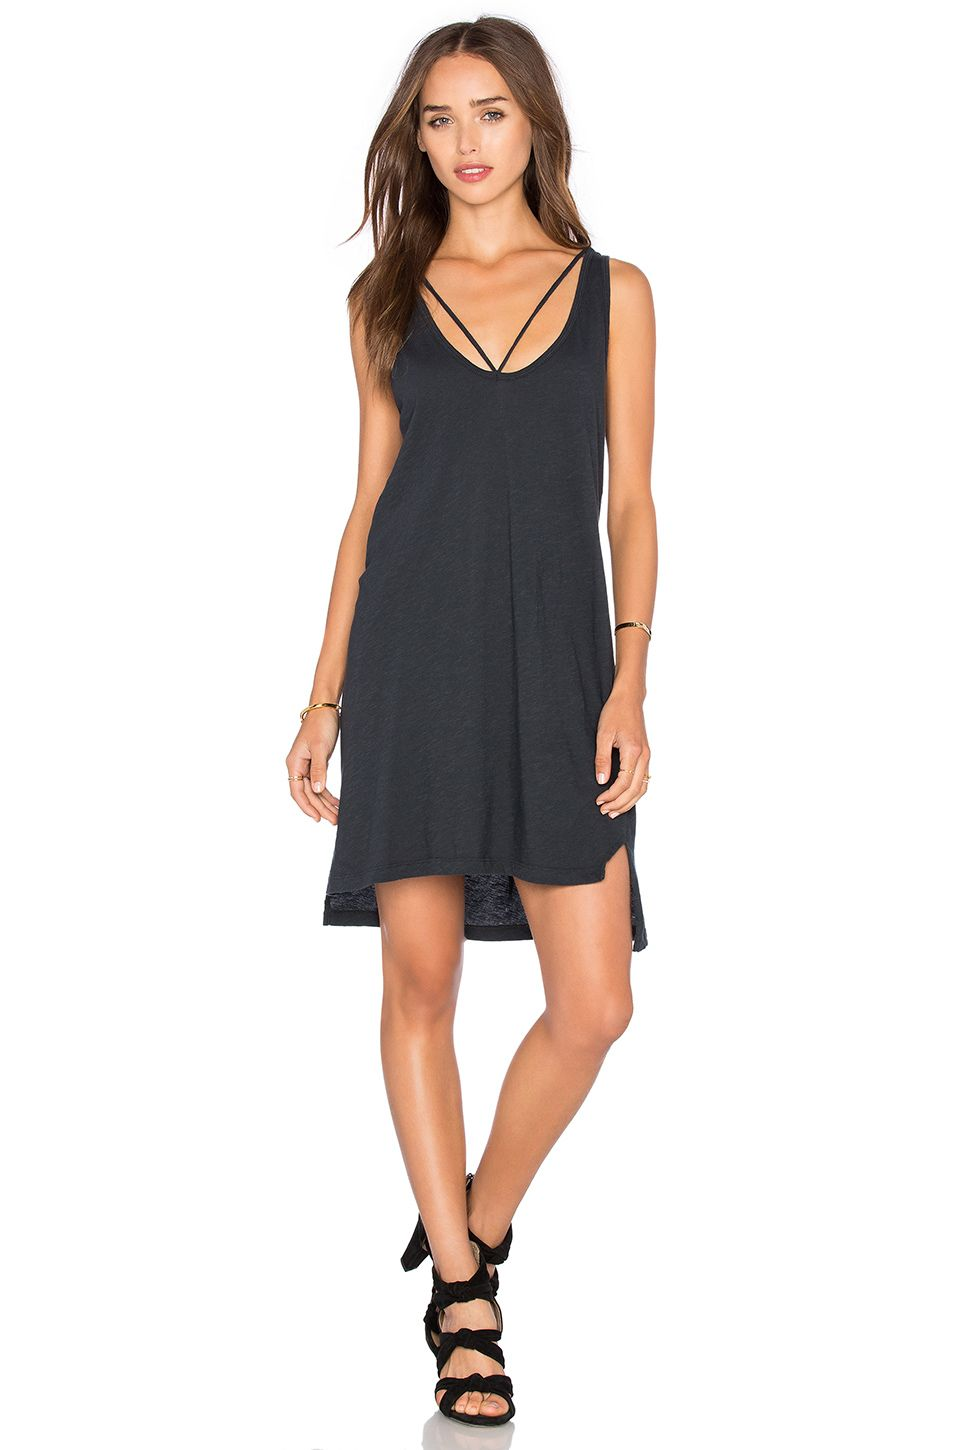 Black Tank Spring Dress Strappy Faded And Summer TZt11waxq